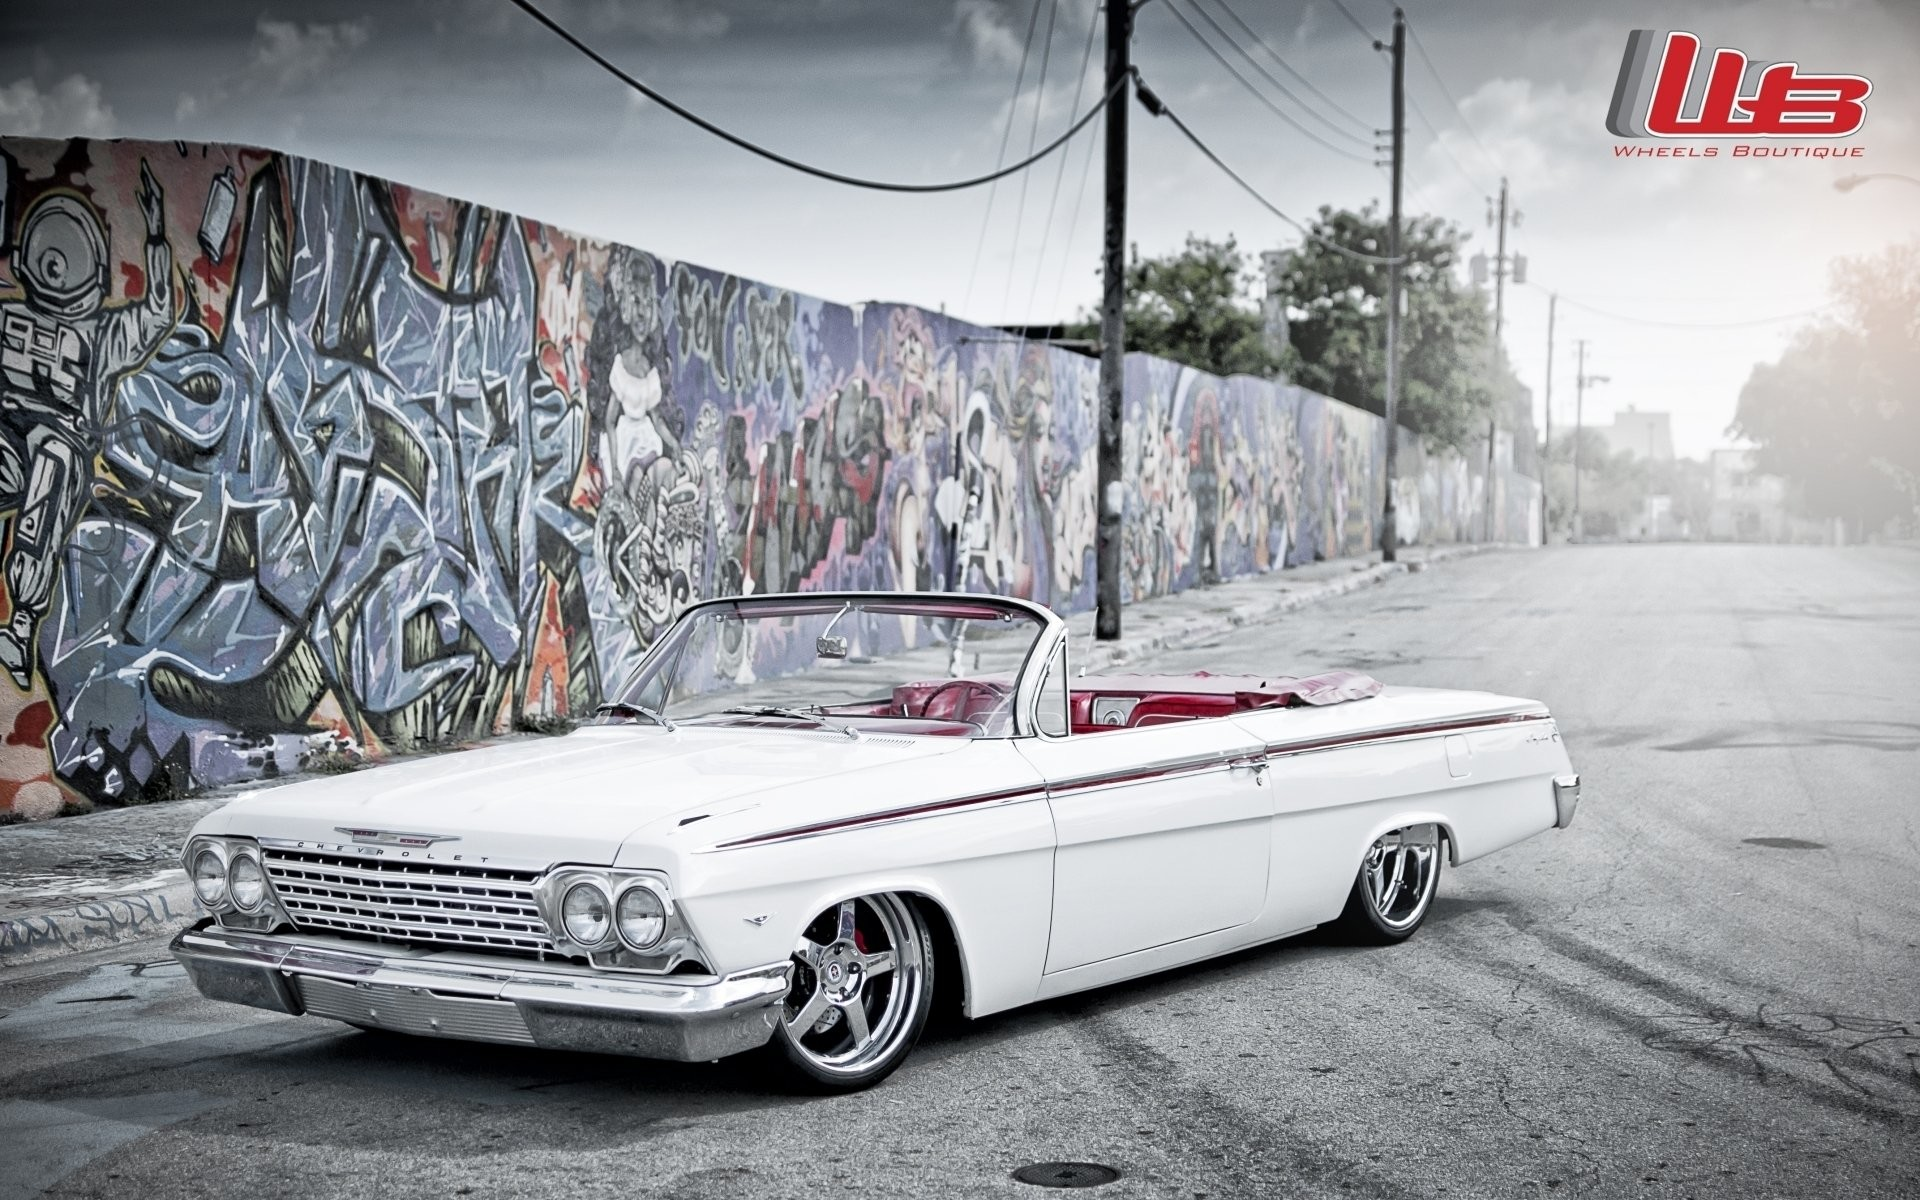 1920x1200 - Lowrider Wallpapers 27